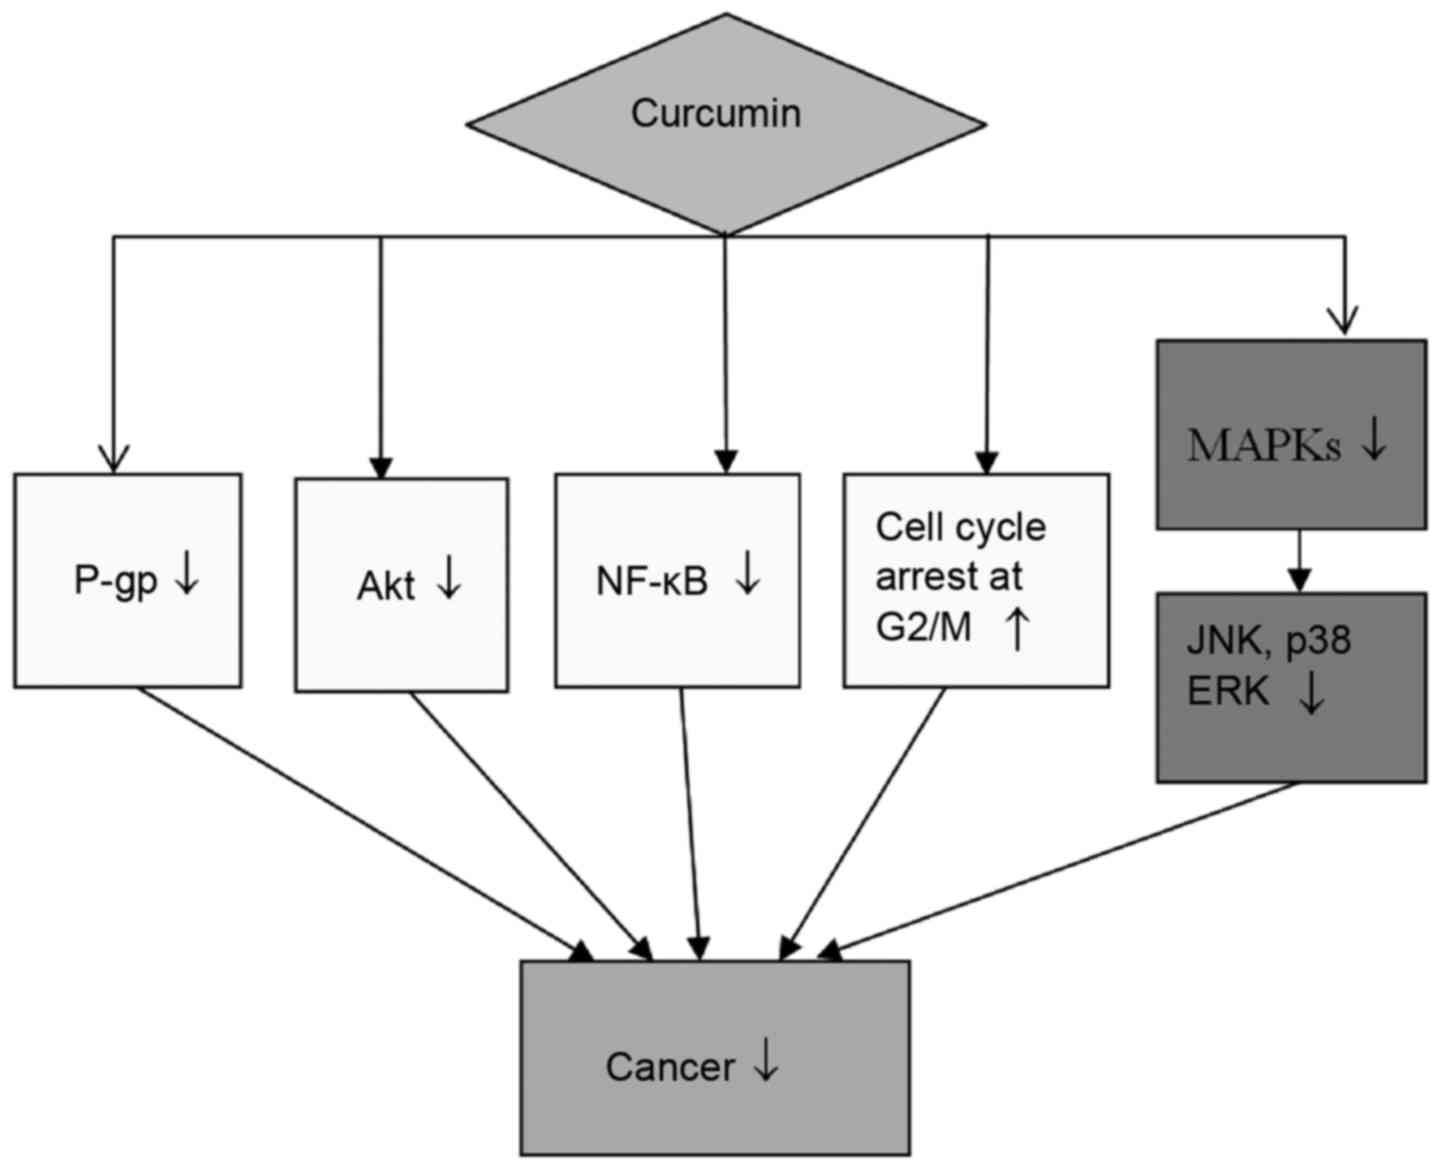 Preclinical Studies For The Combination Of Paclitaxel And Curcumin In Cancer Therapy Review